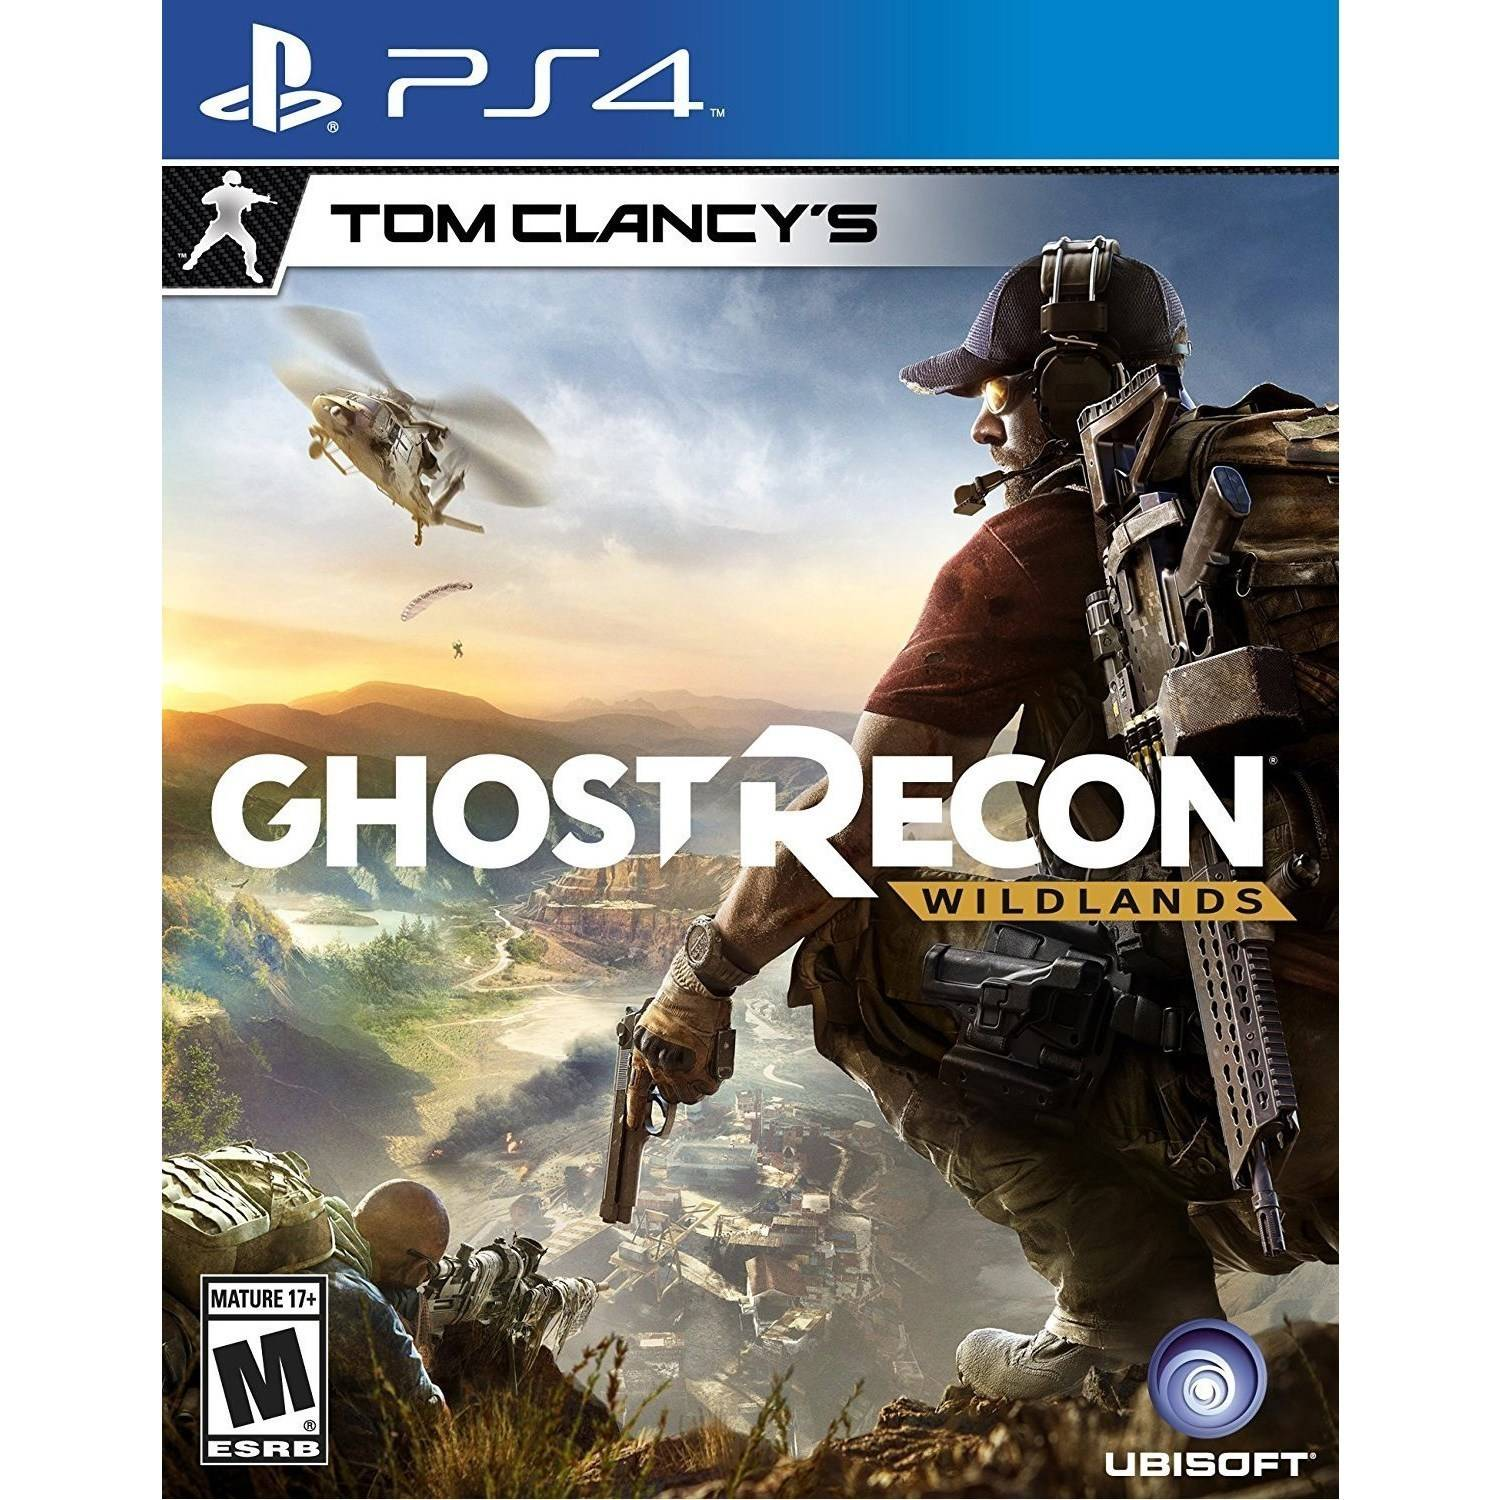 Tom Clancy's Ghost Recon: Wildlands Day 1 Edition, Ubisoft, PlayStation 4, 887256015725